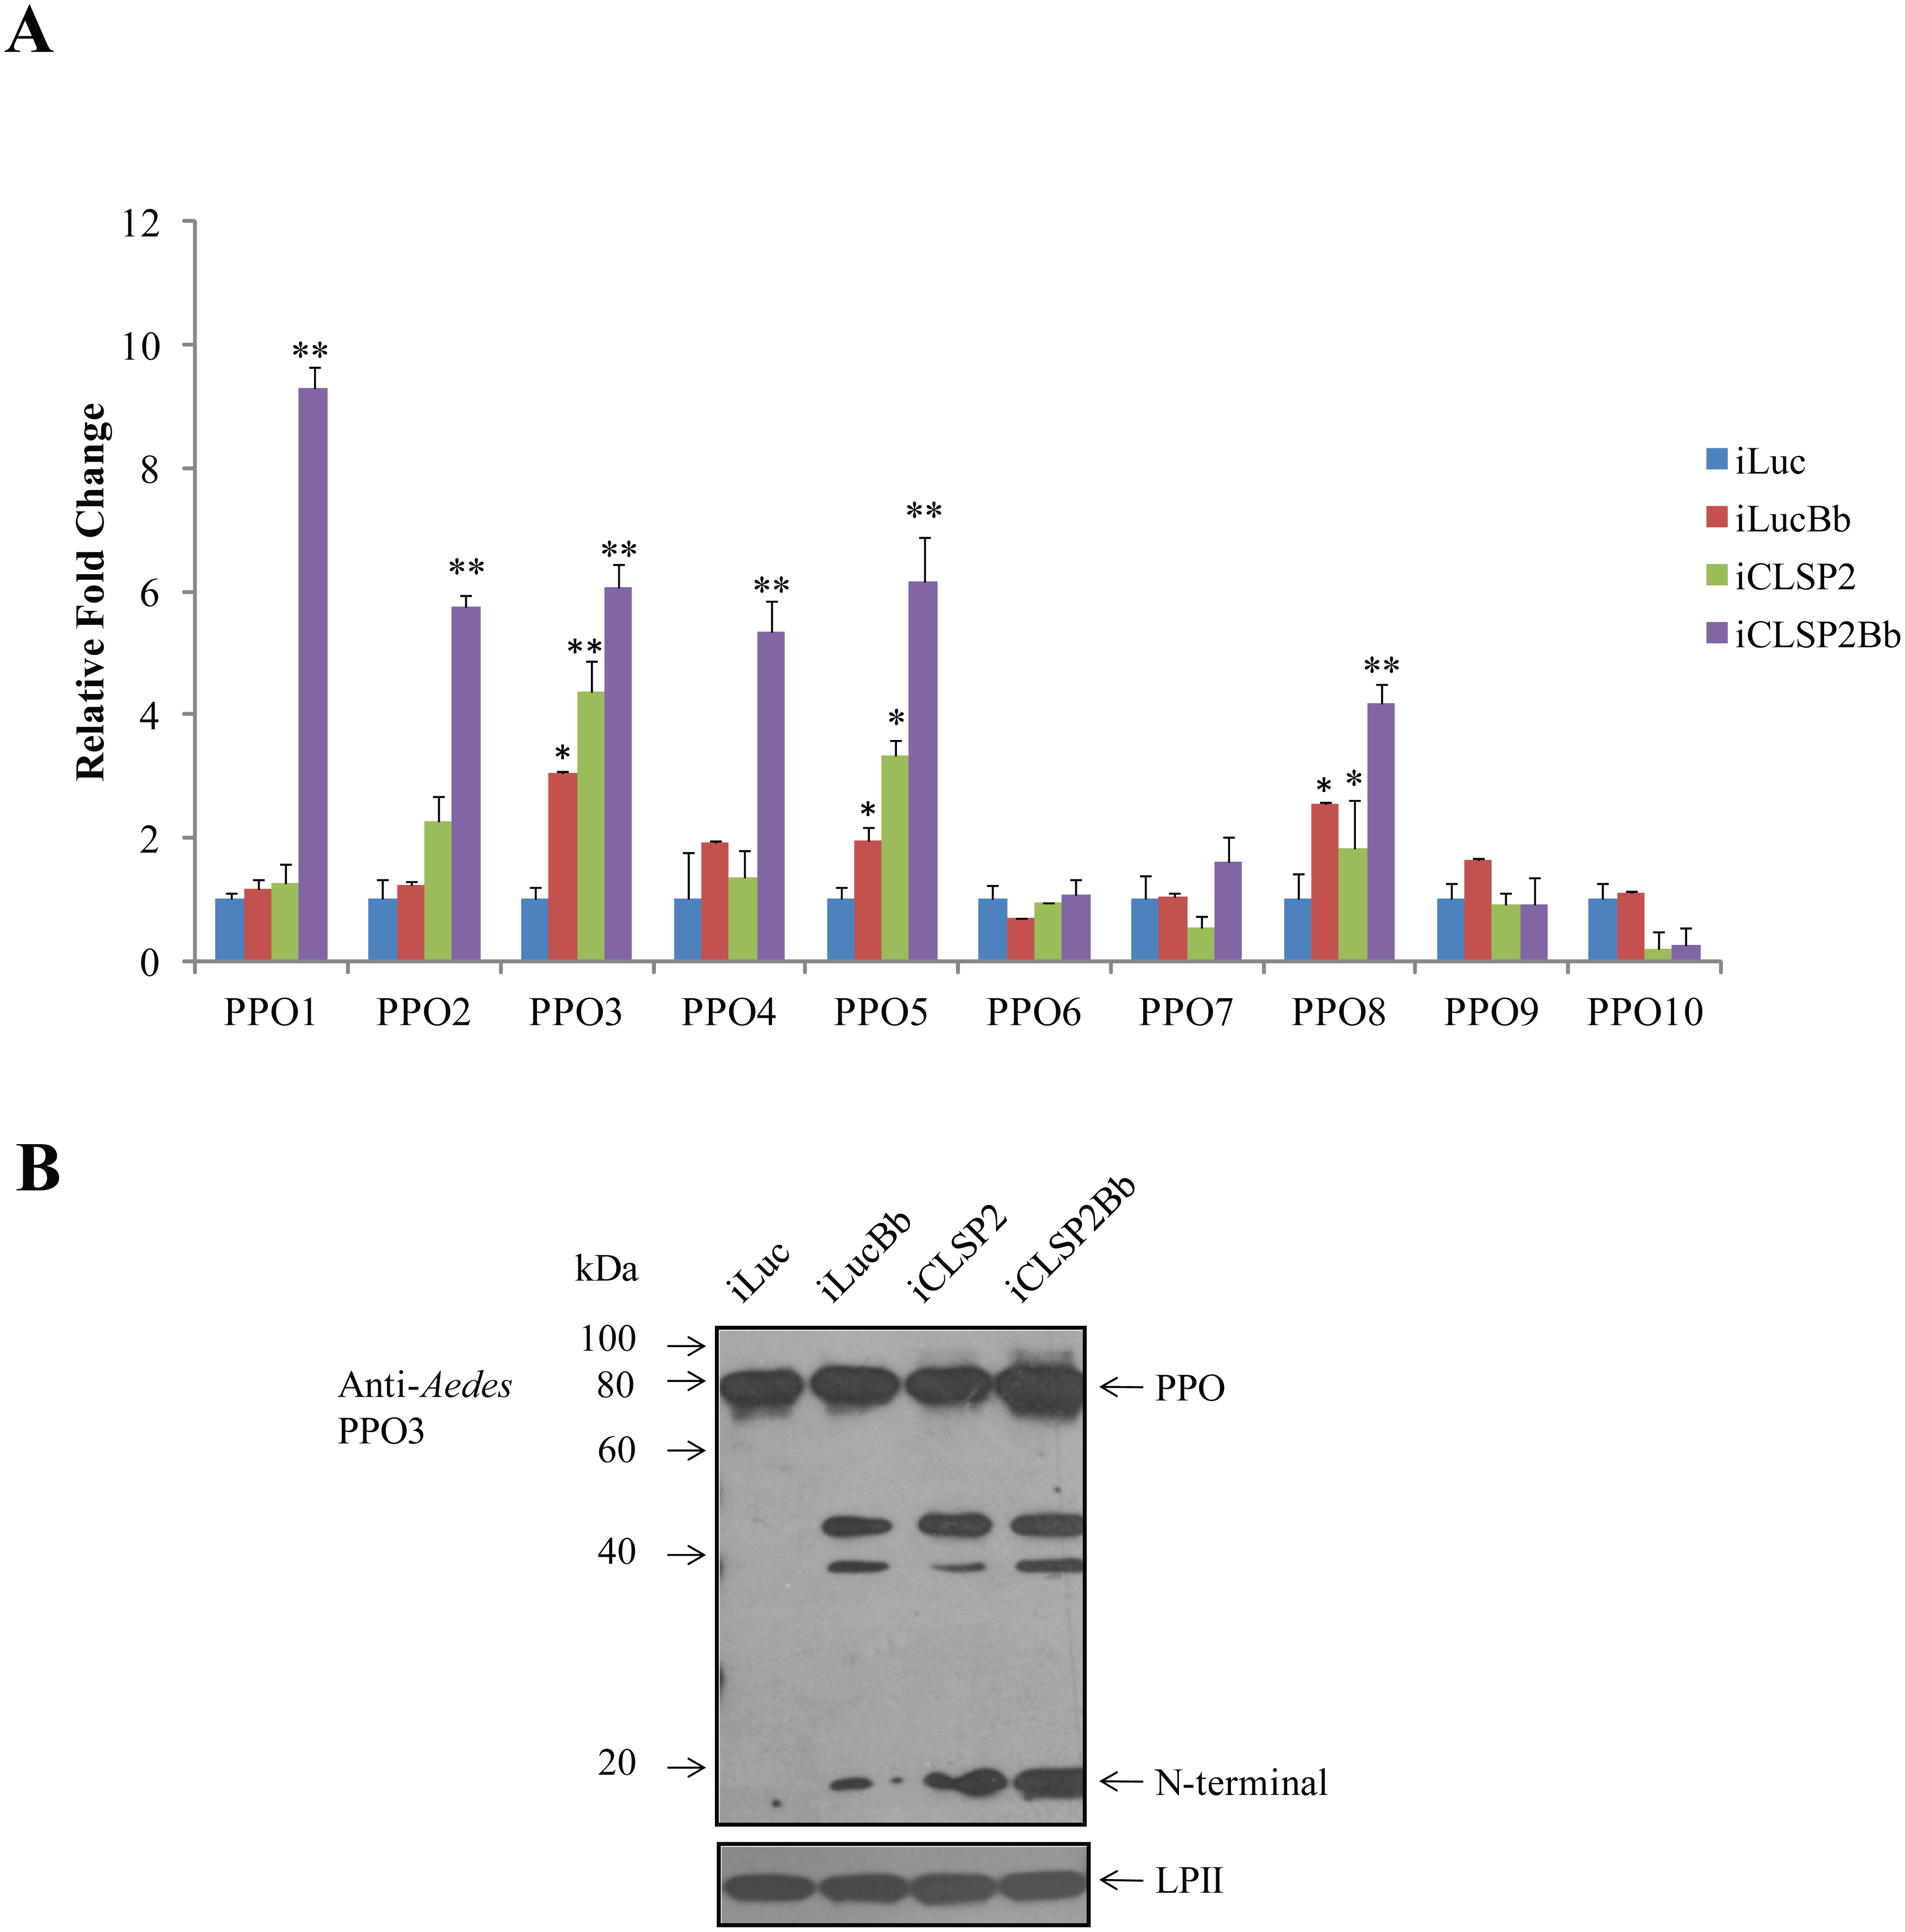 The effect of CLSP2 on transcriptional activation of <i>PPO</i> genes.